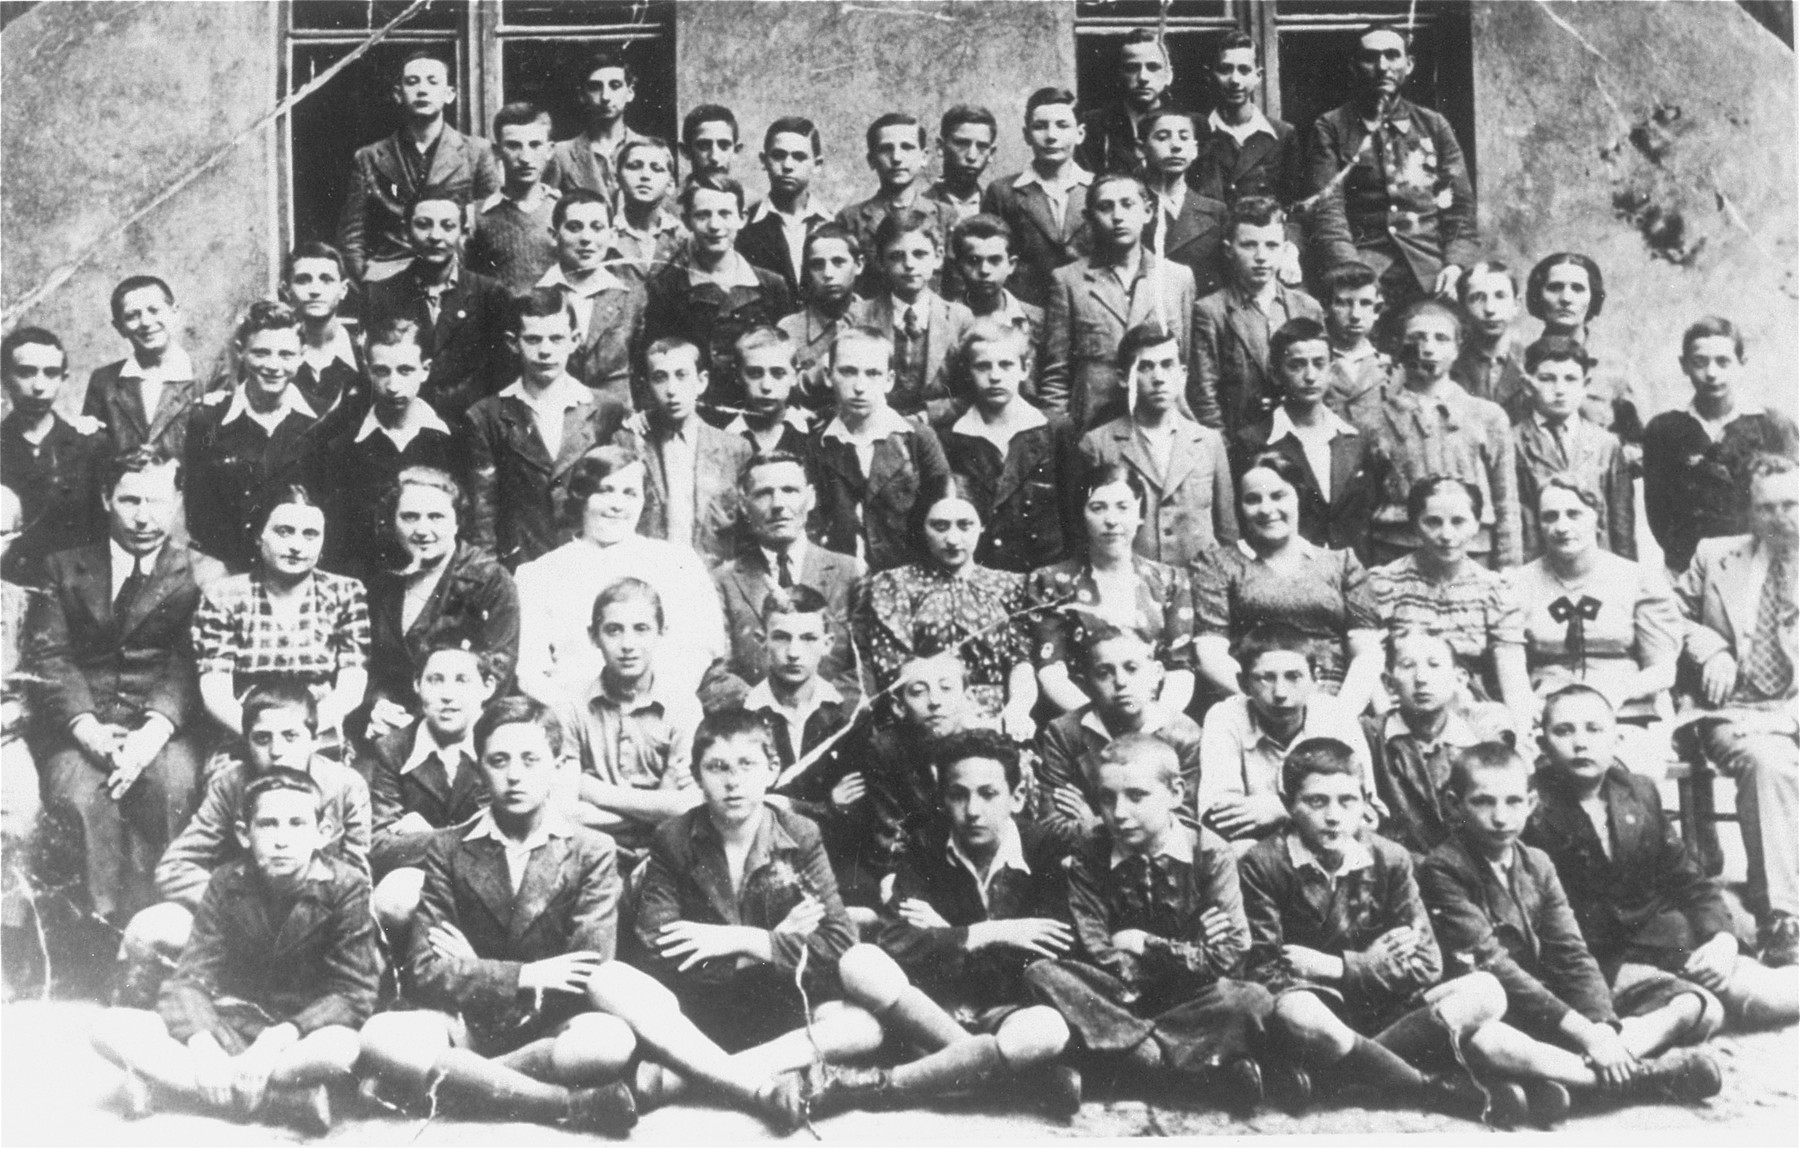 Group portrait of students in Class VII during their final semester at the Jewish public school no.121 (known as Konstadt) in Lodz.    Among those pictured is Solly Perel (second row from the front, second from the left).